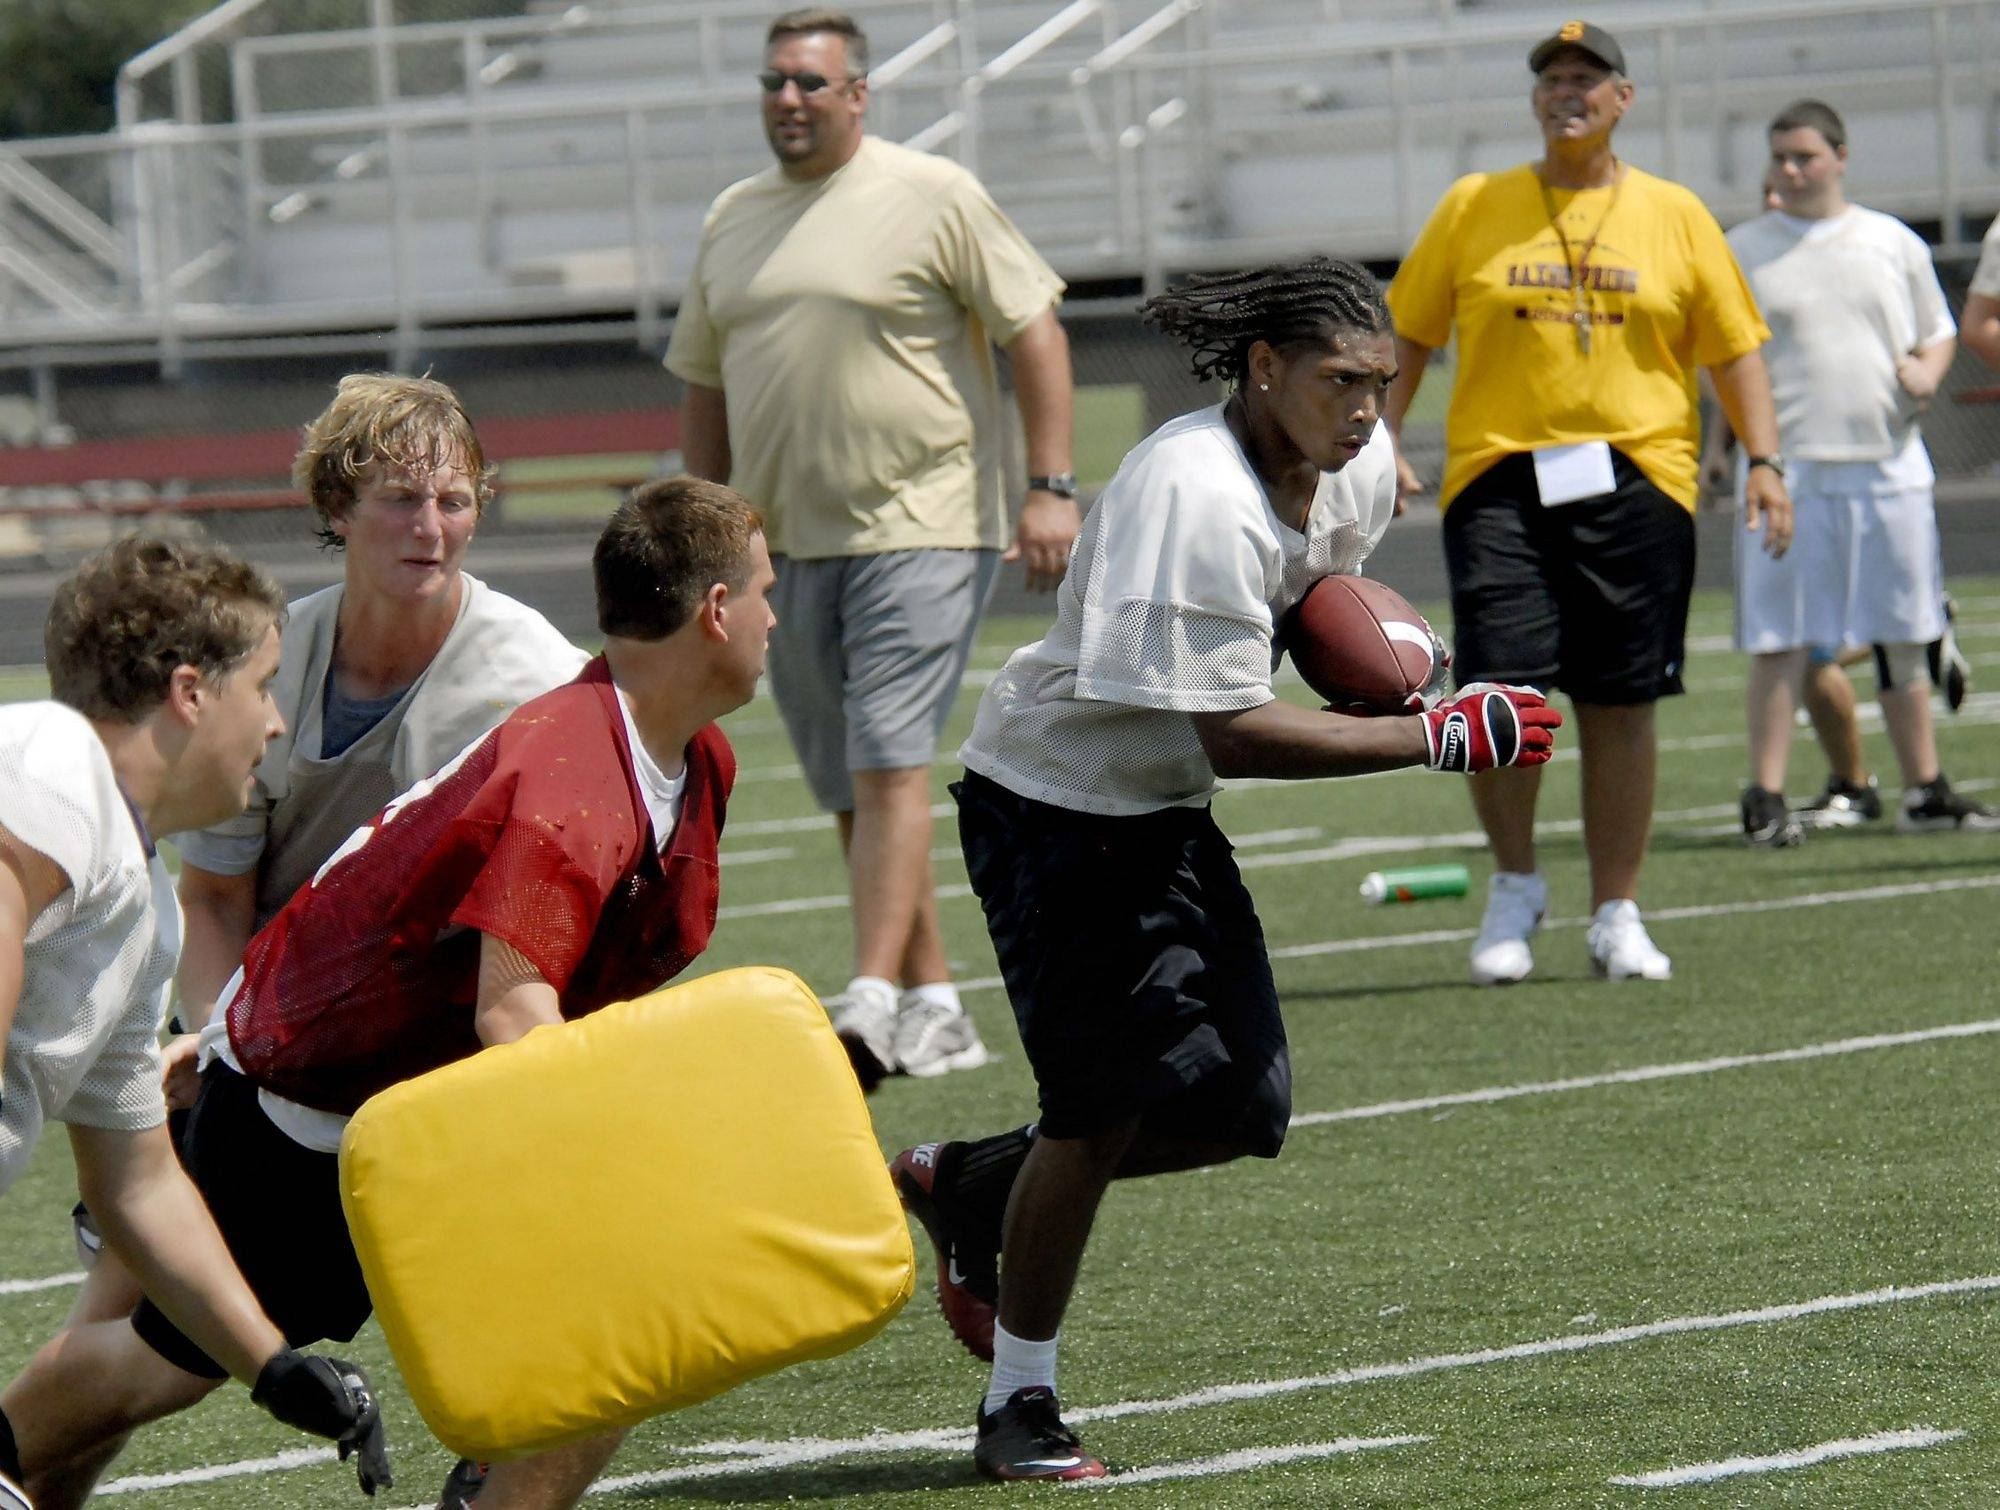 Coaches with a play Friday at the Schaumburg Varsity football practice.